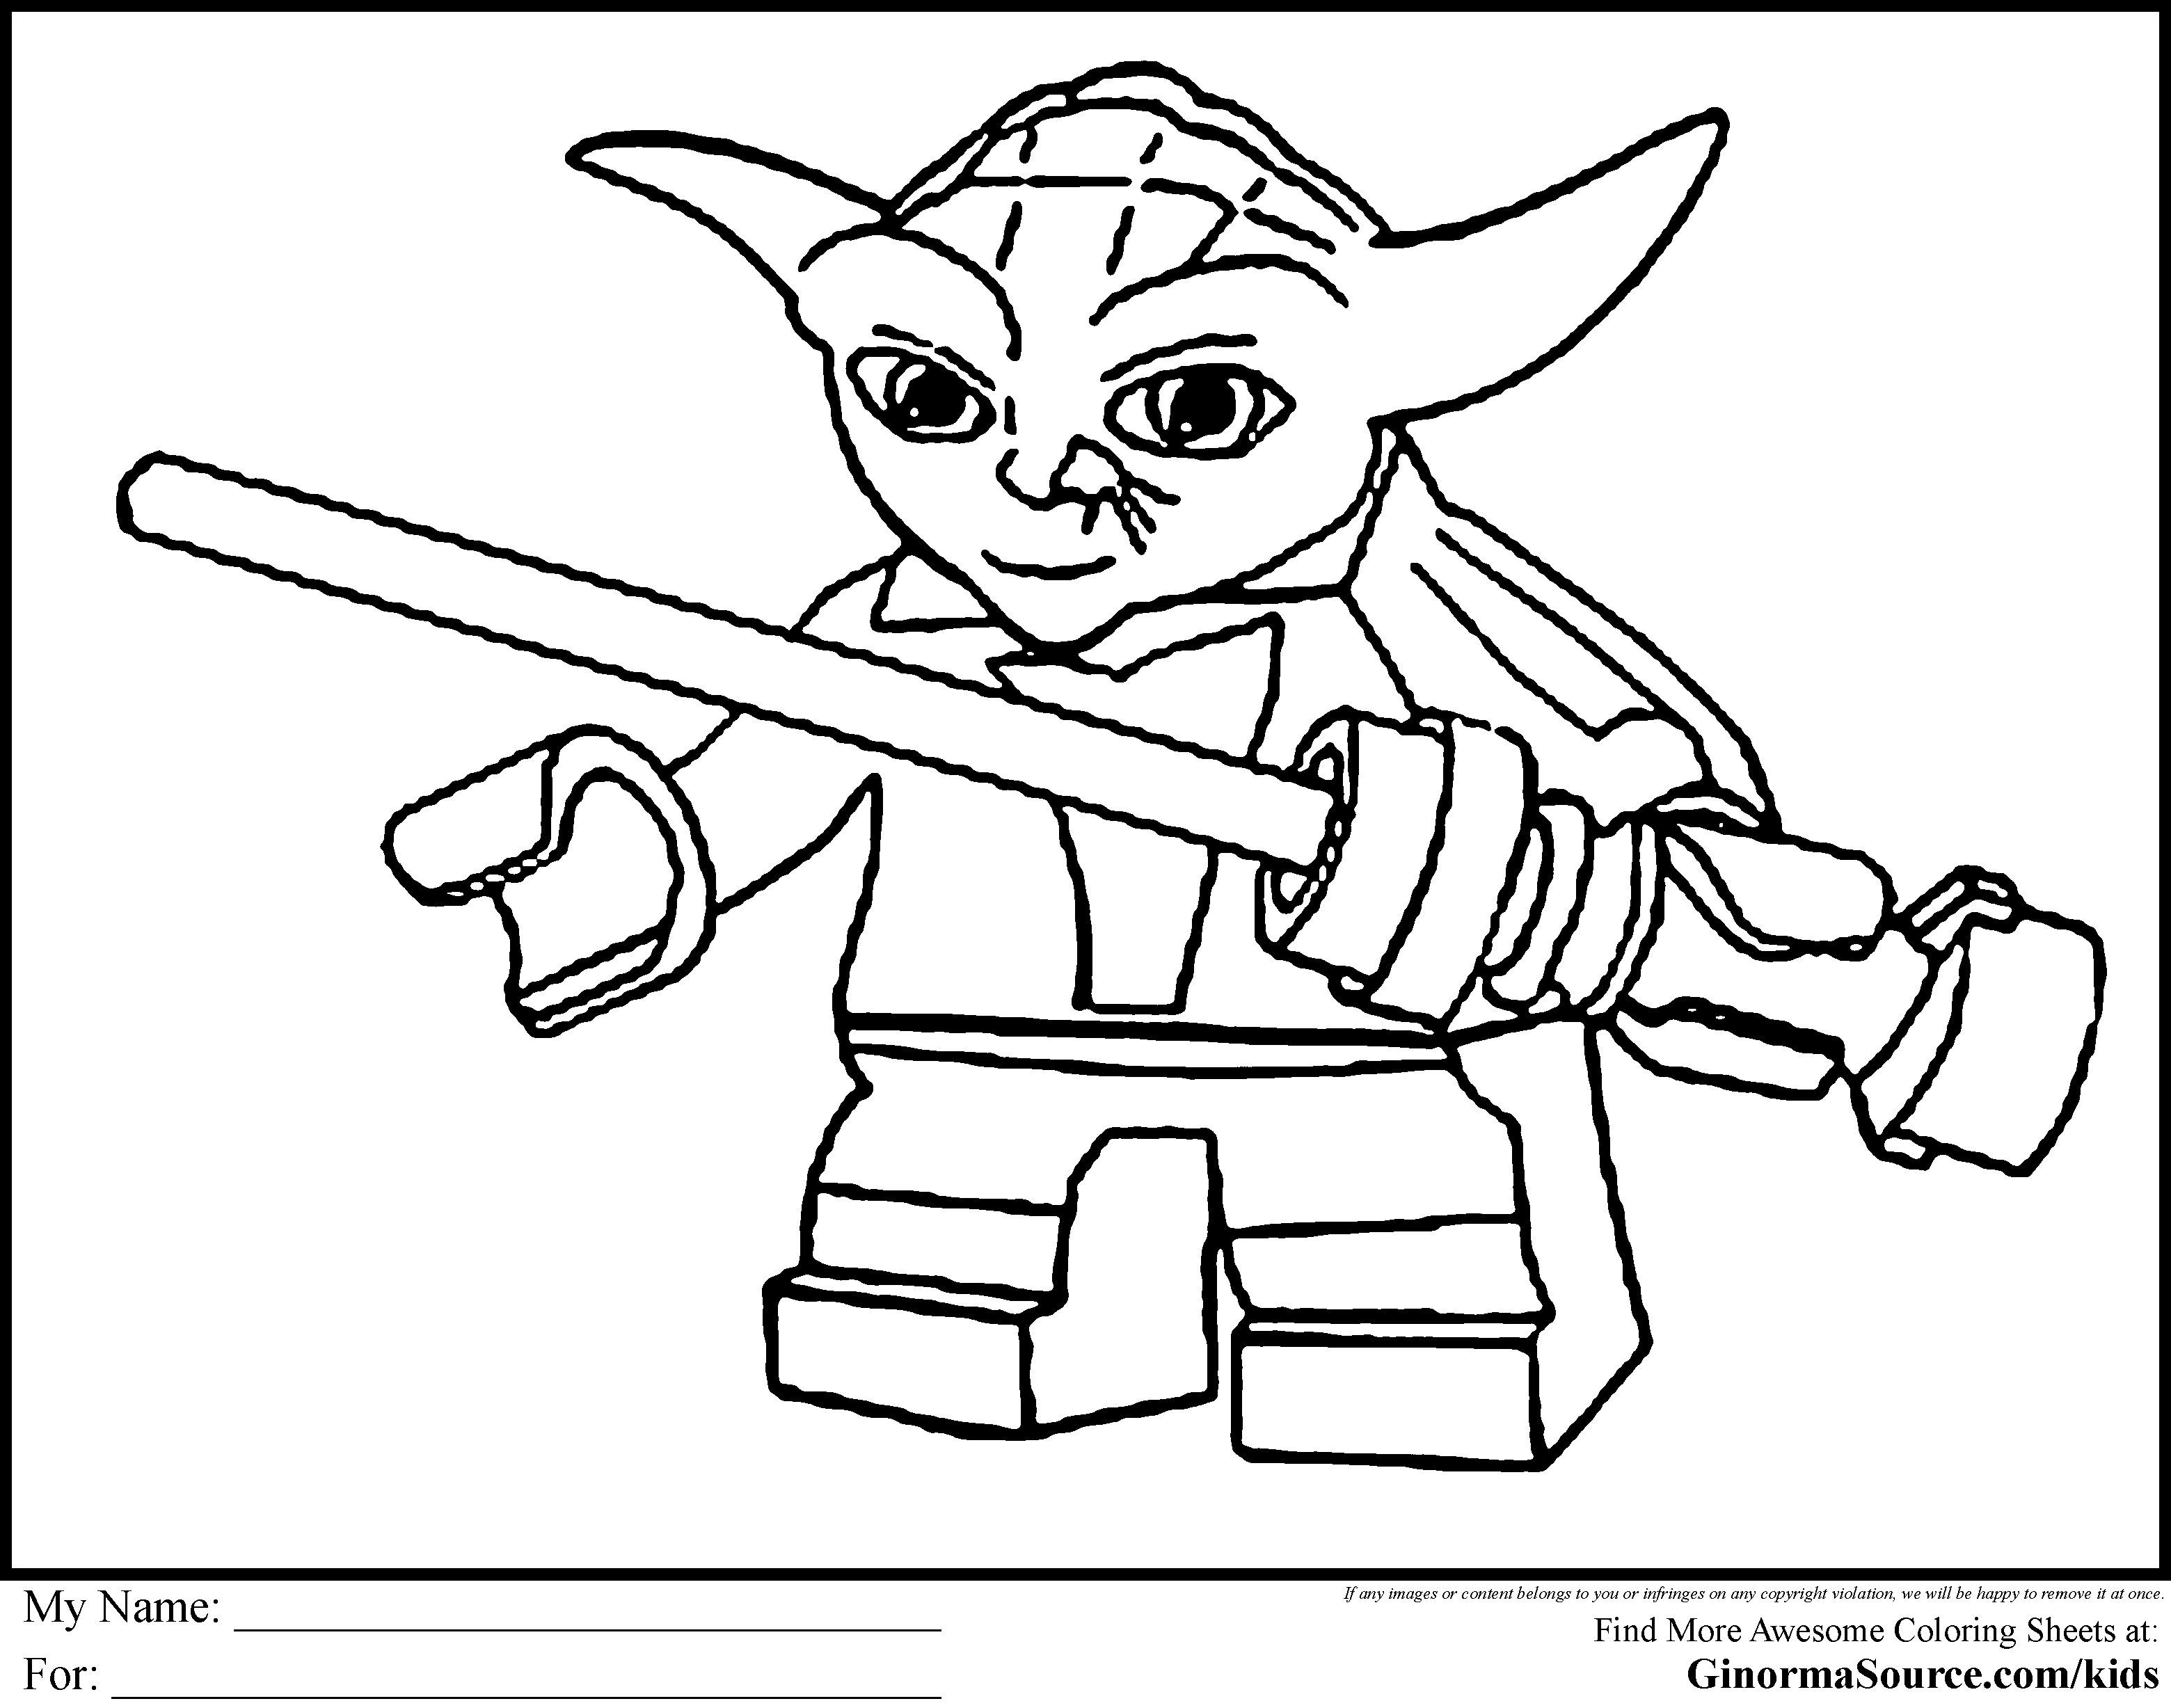 free lego star wars coloring pages lego coloring pages starwars yoda ginormasource kids - Star Wars Coloring Books